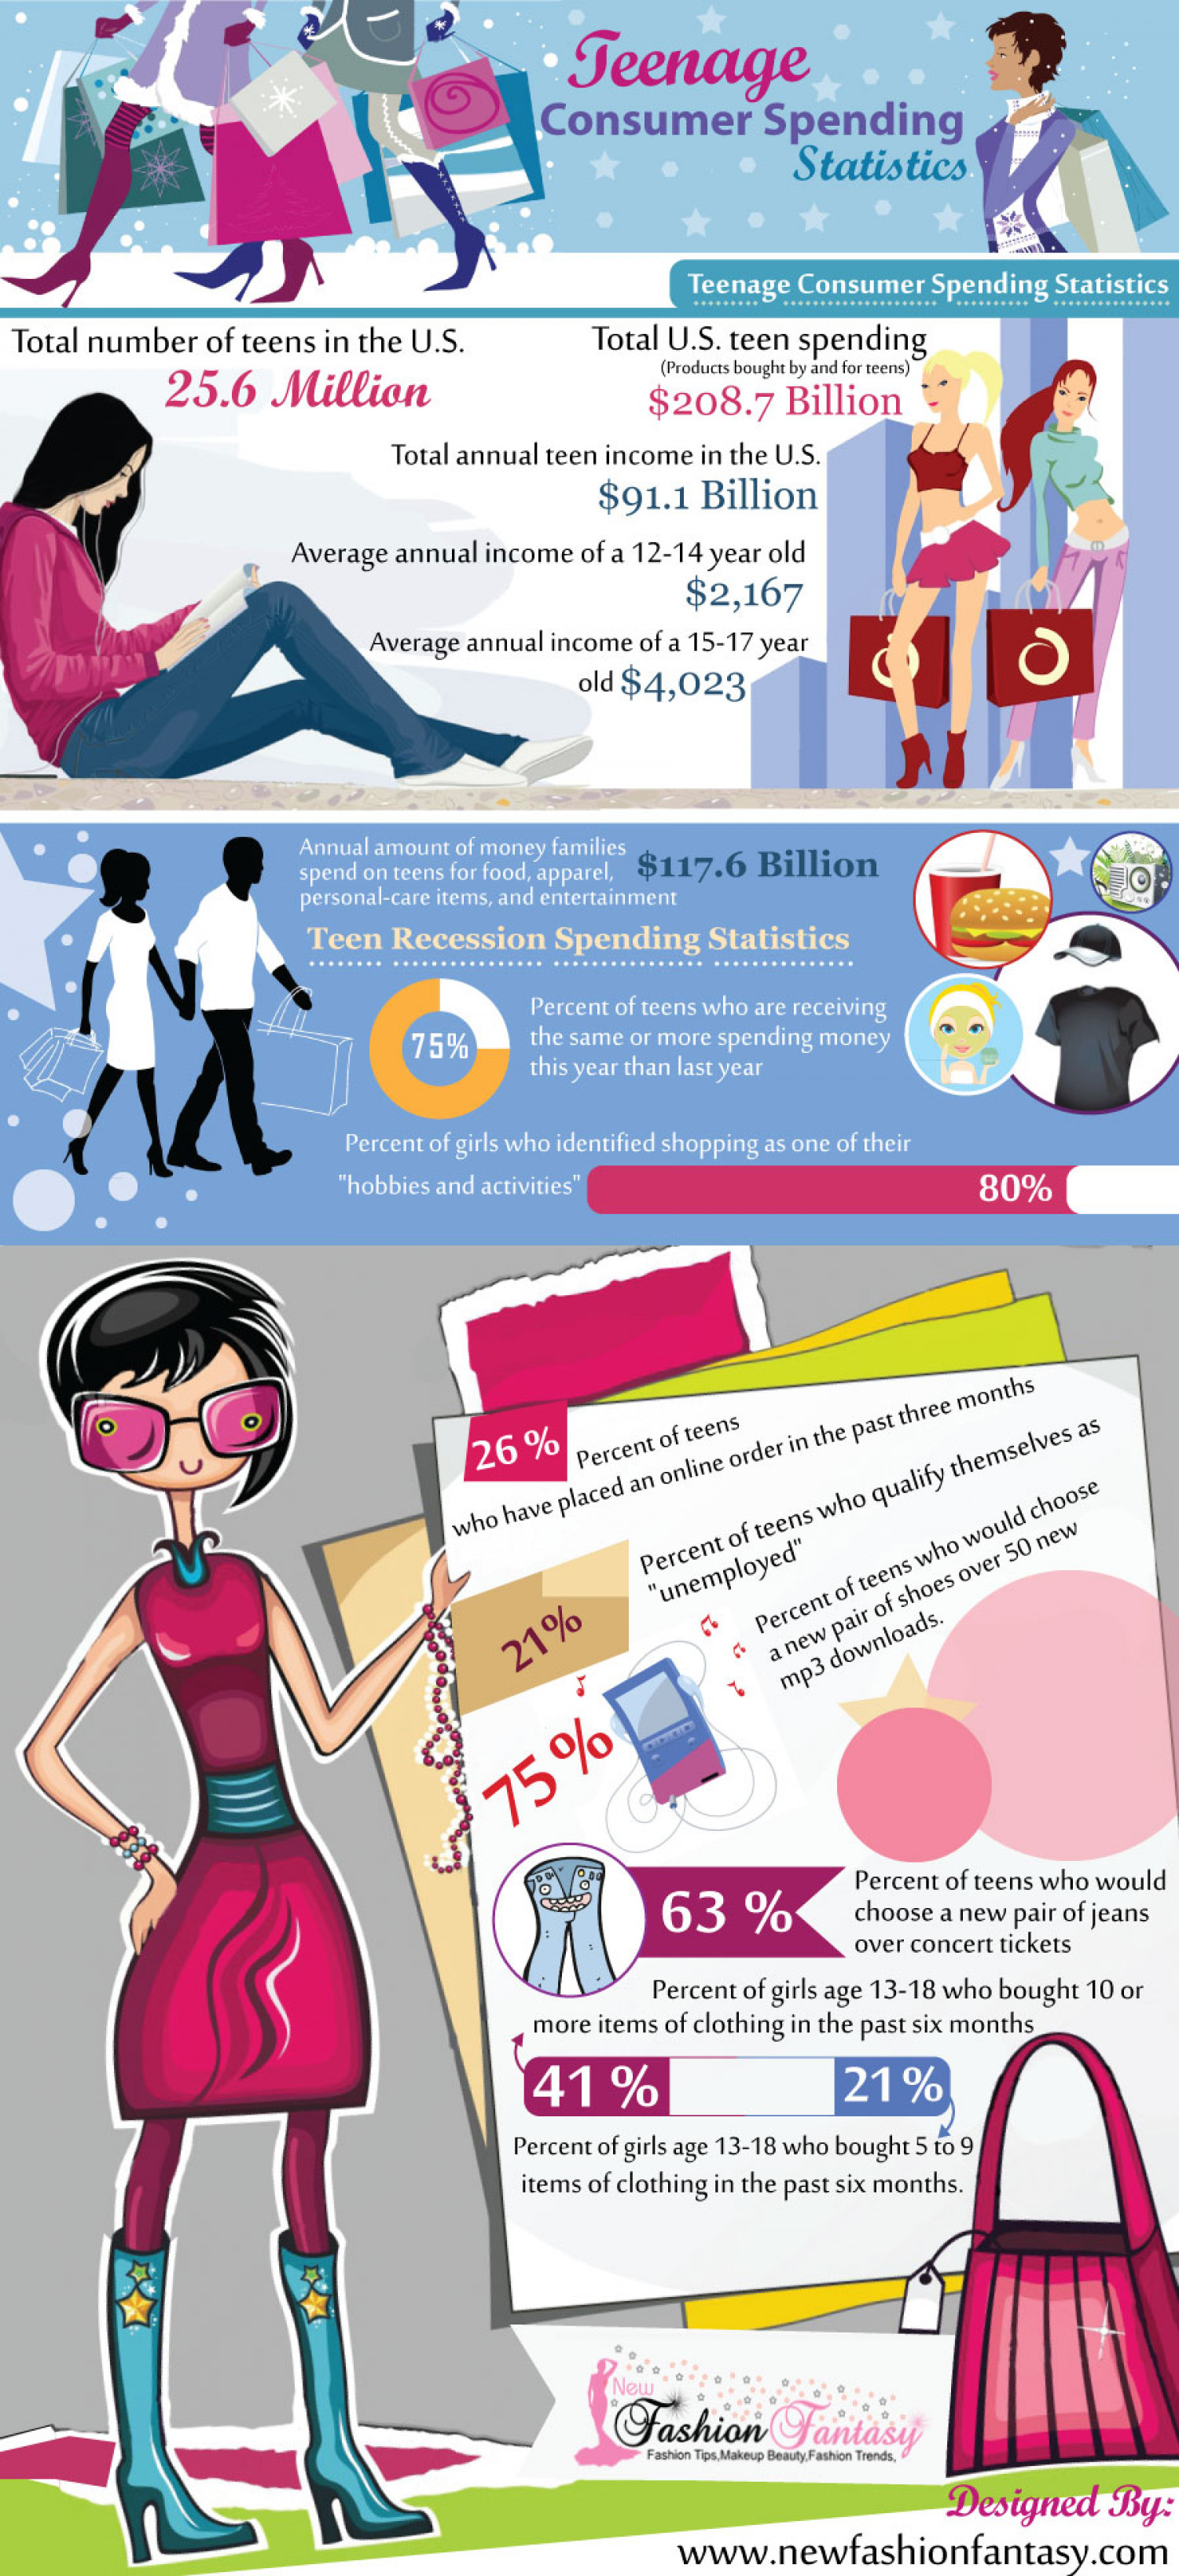 Teen Spending Statistics in the U.S. Infographic